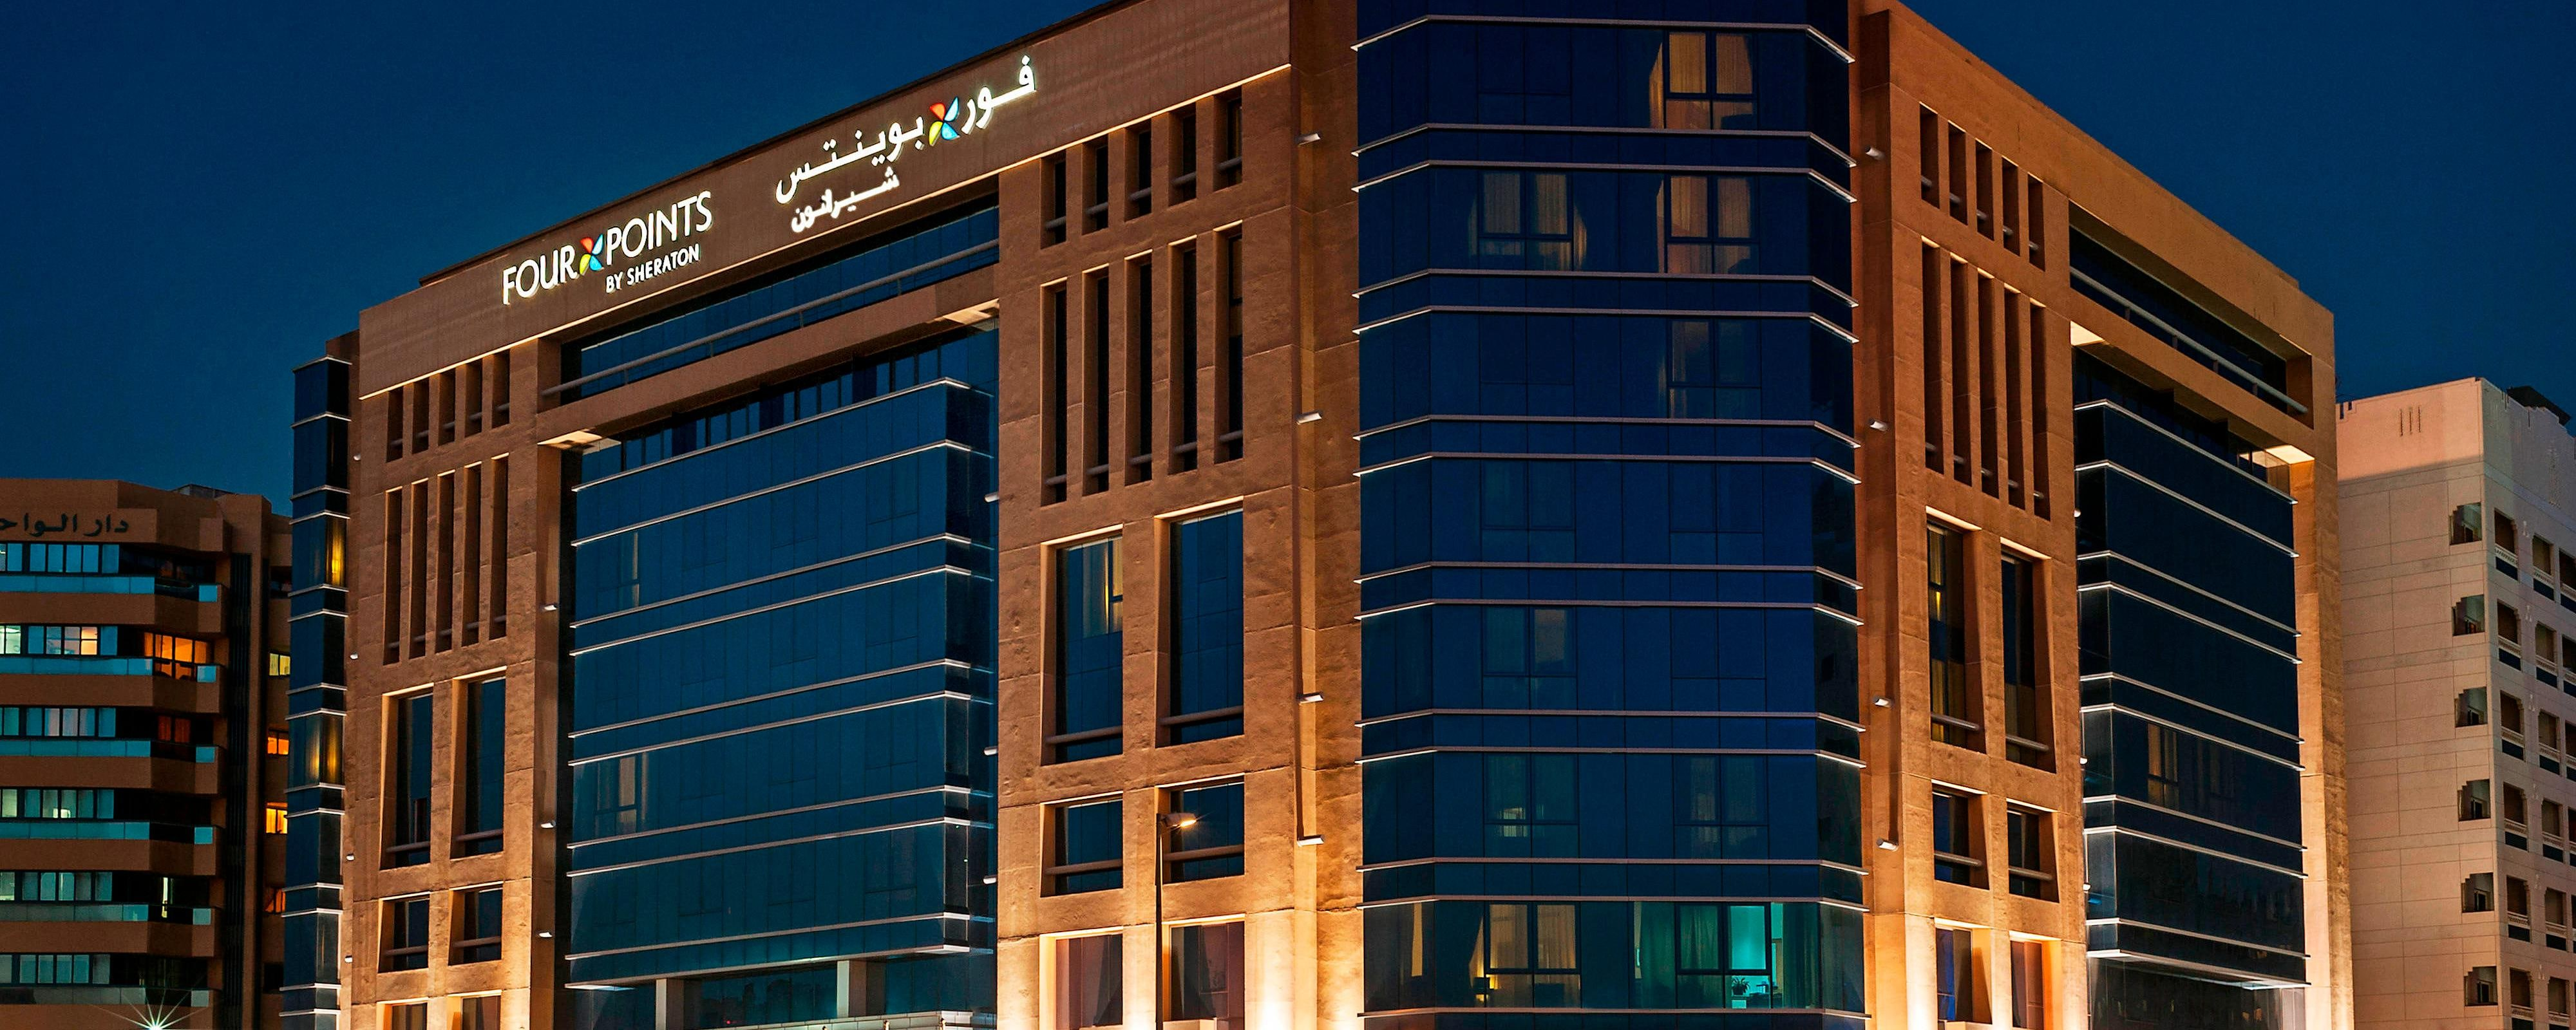 Business Leisure Hotel In Dubai Four Points By Sheraton Downtown